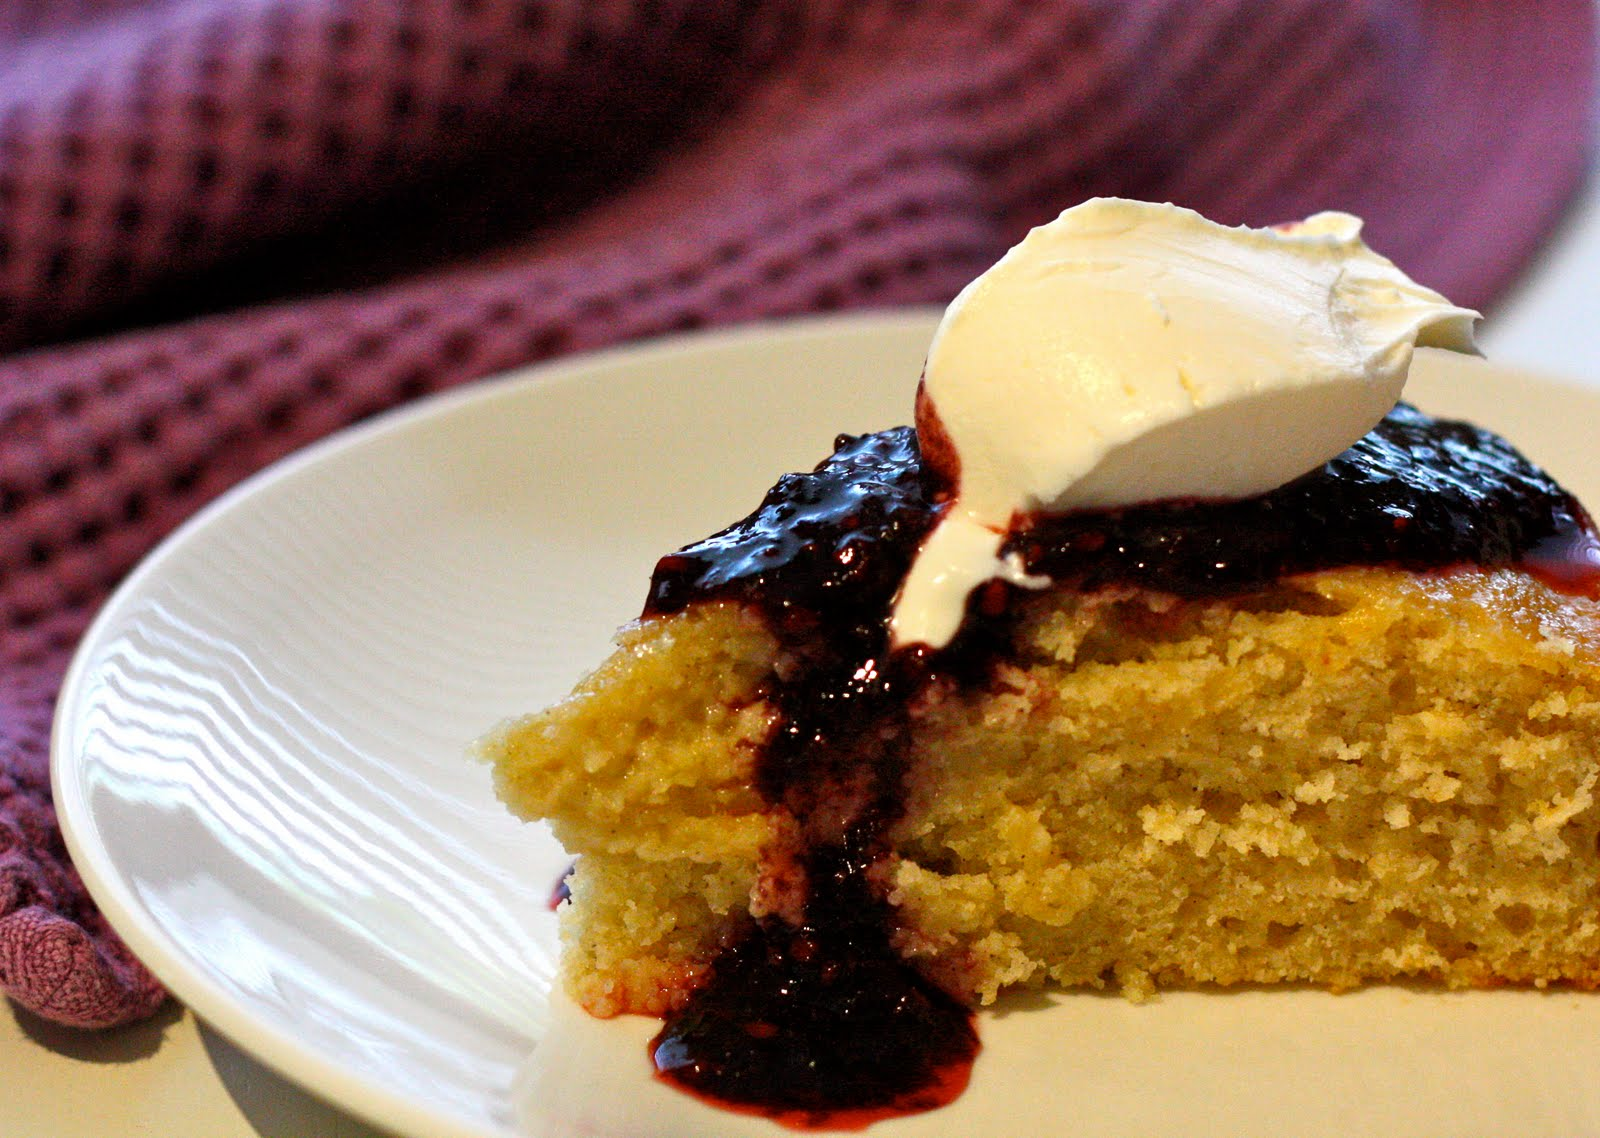 Chi Town Cook: Lime Yogurt Cake with Blackberry Sauce